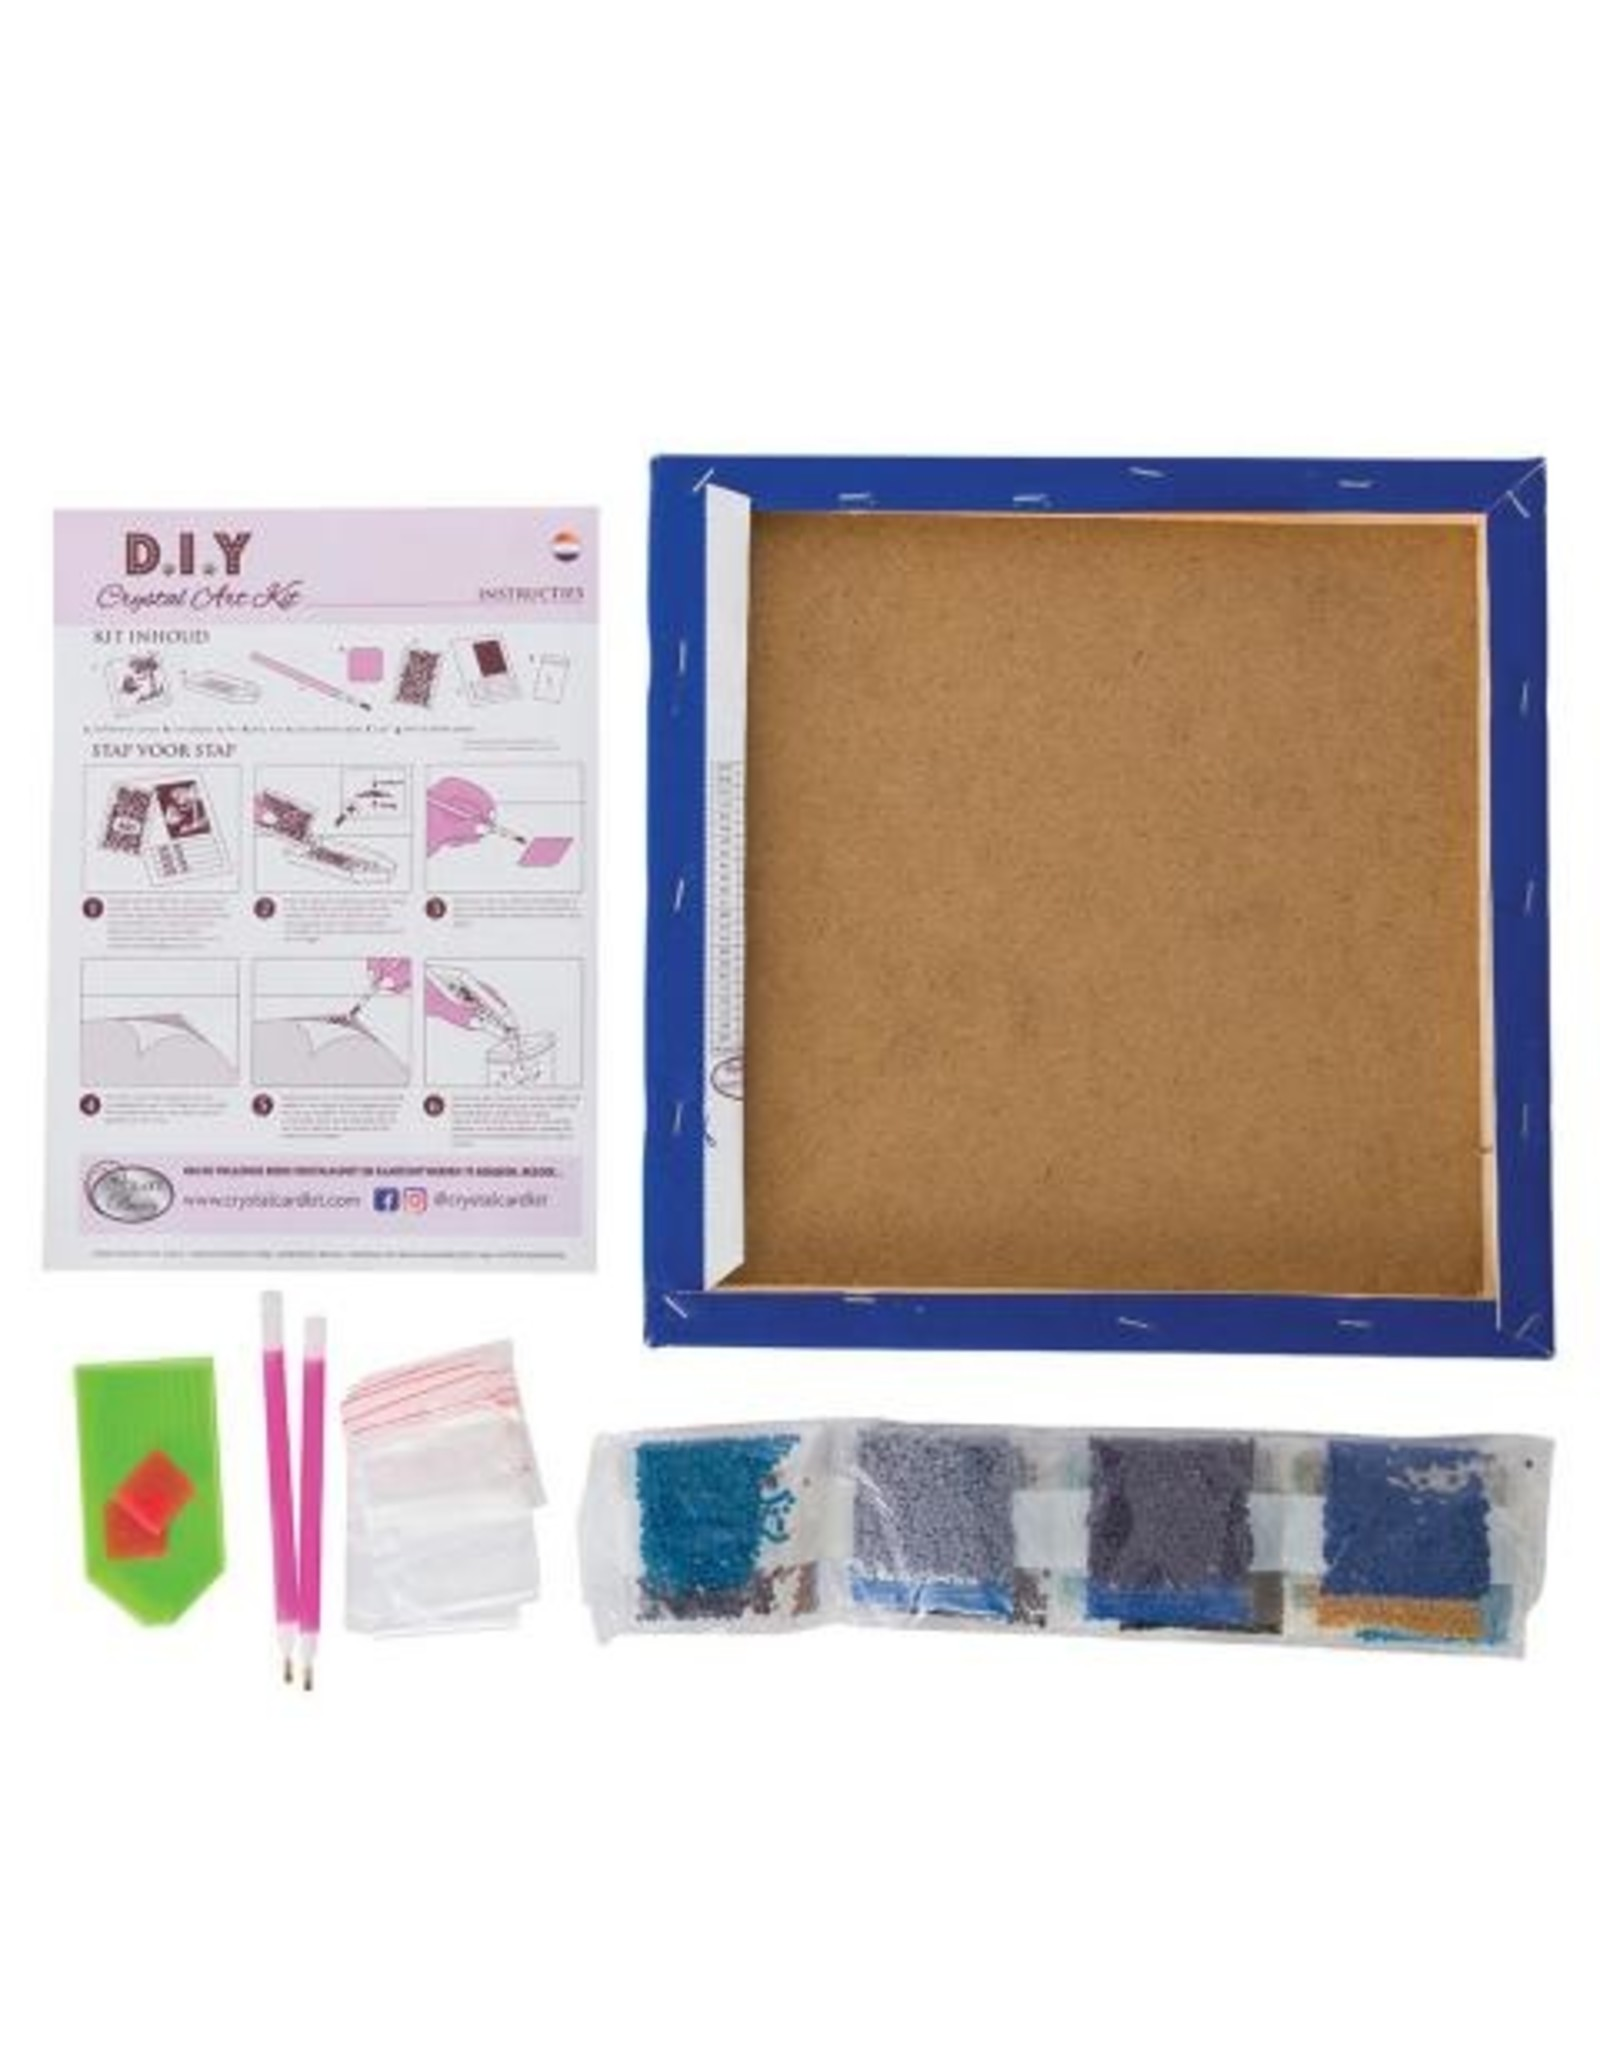 D.I.Y Crystal Art Kit Crystal Art Medium Framed Kit - Hot Air Balloons